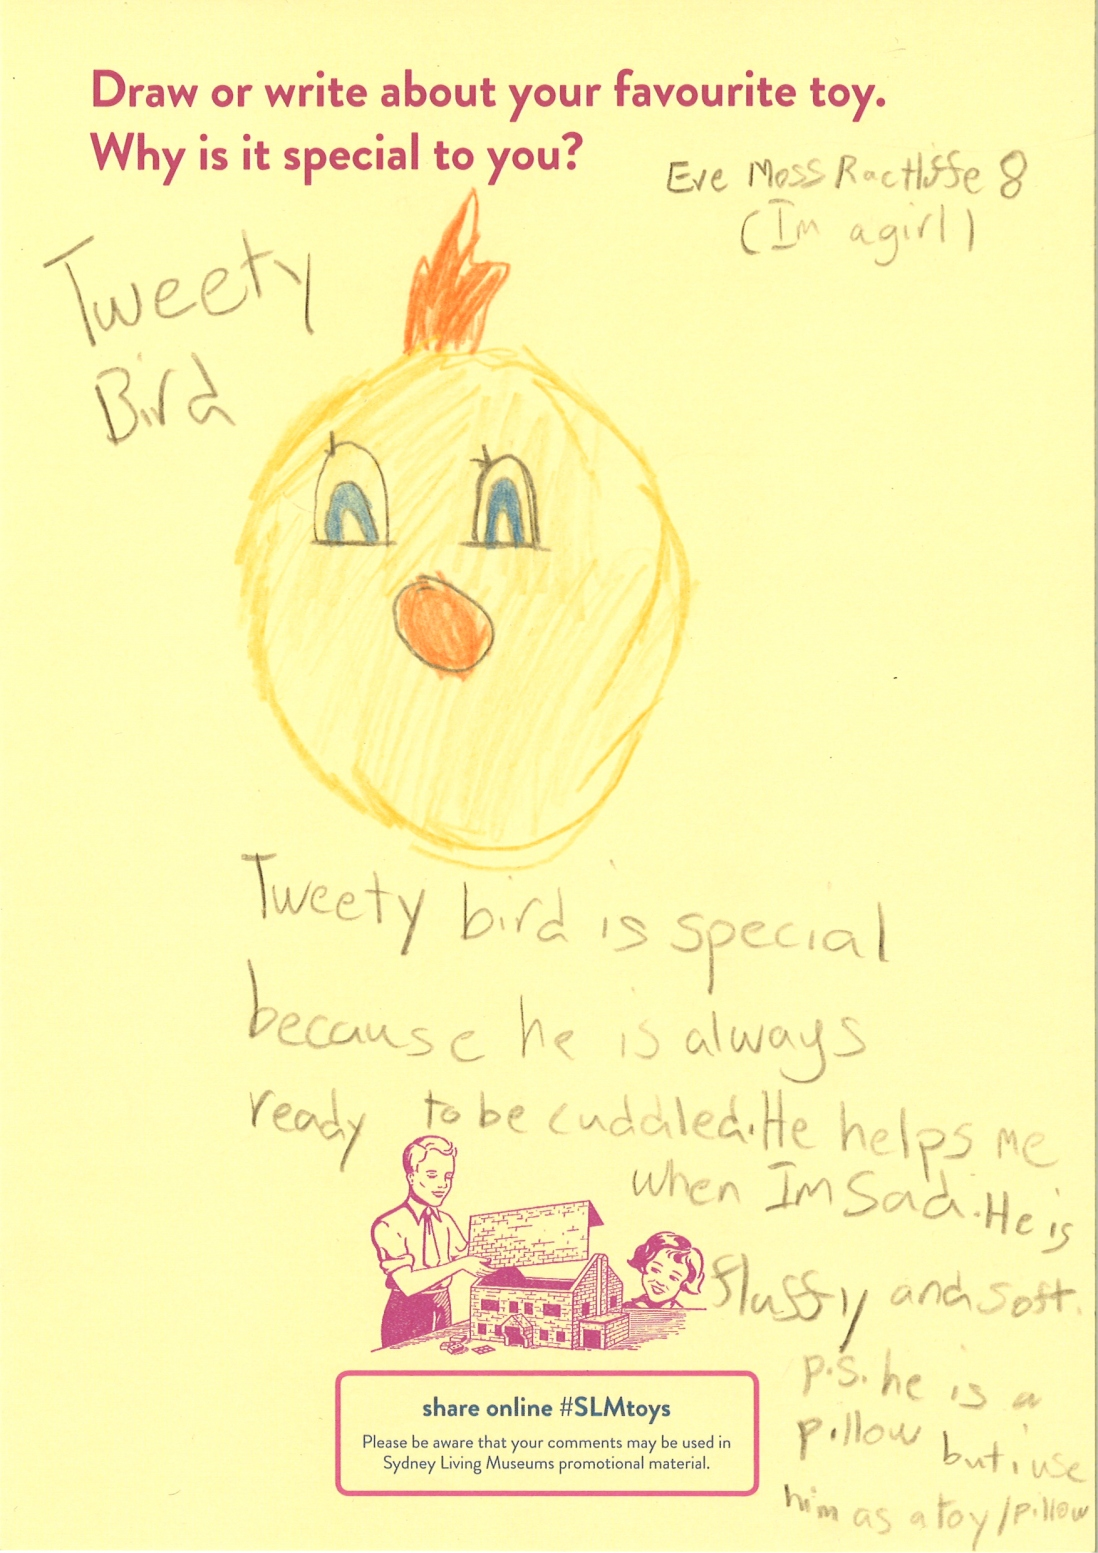 A child's drawing of tweety bird pillow toy